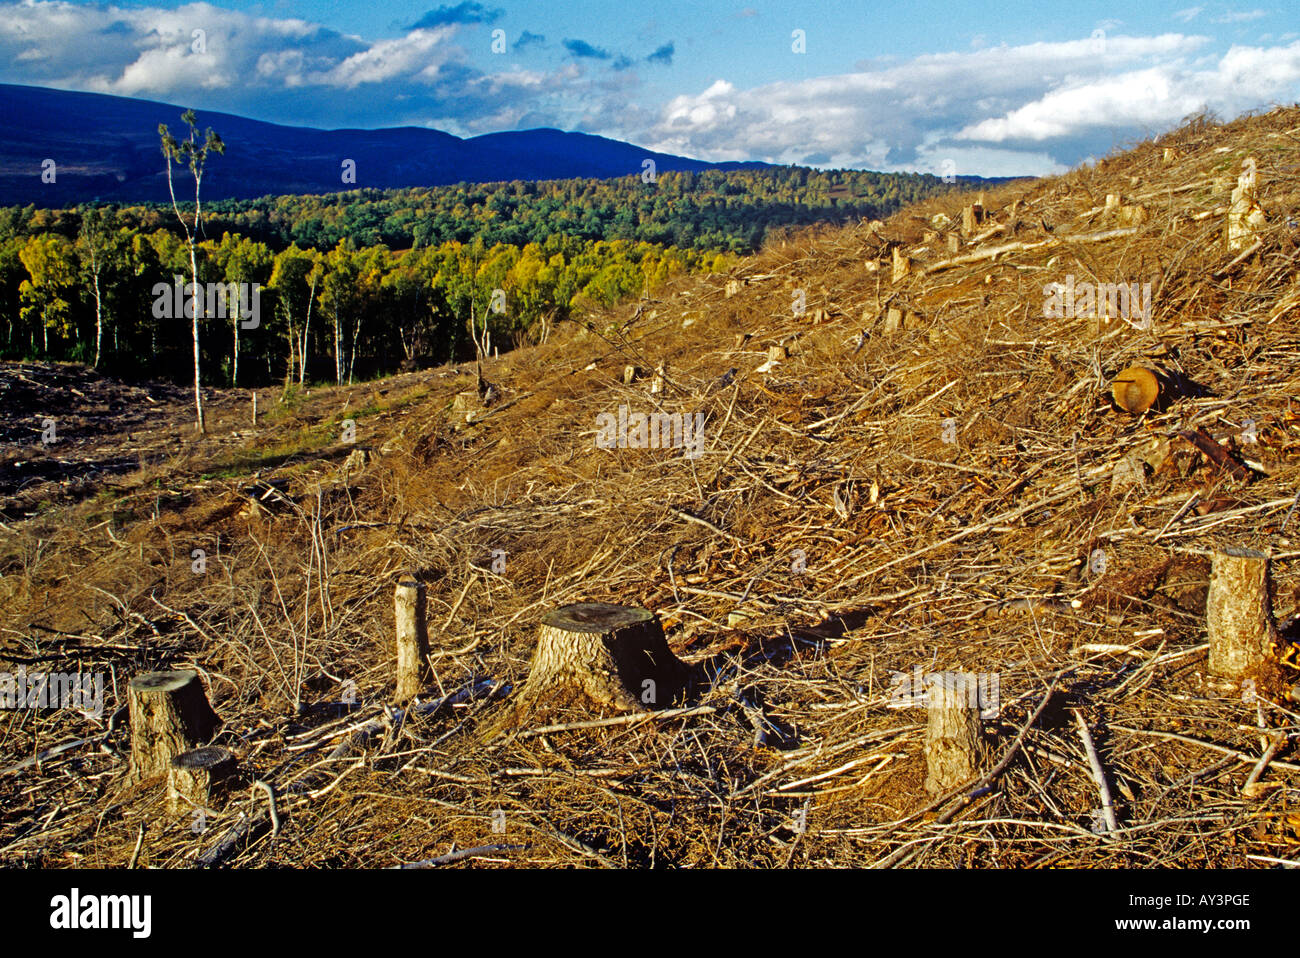 La déforestation sur colline dans les Highlands, Ecosse, Royaume-Uni Photo Stock